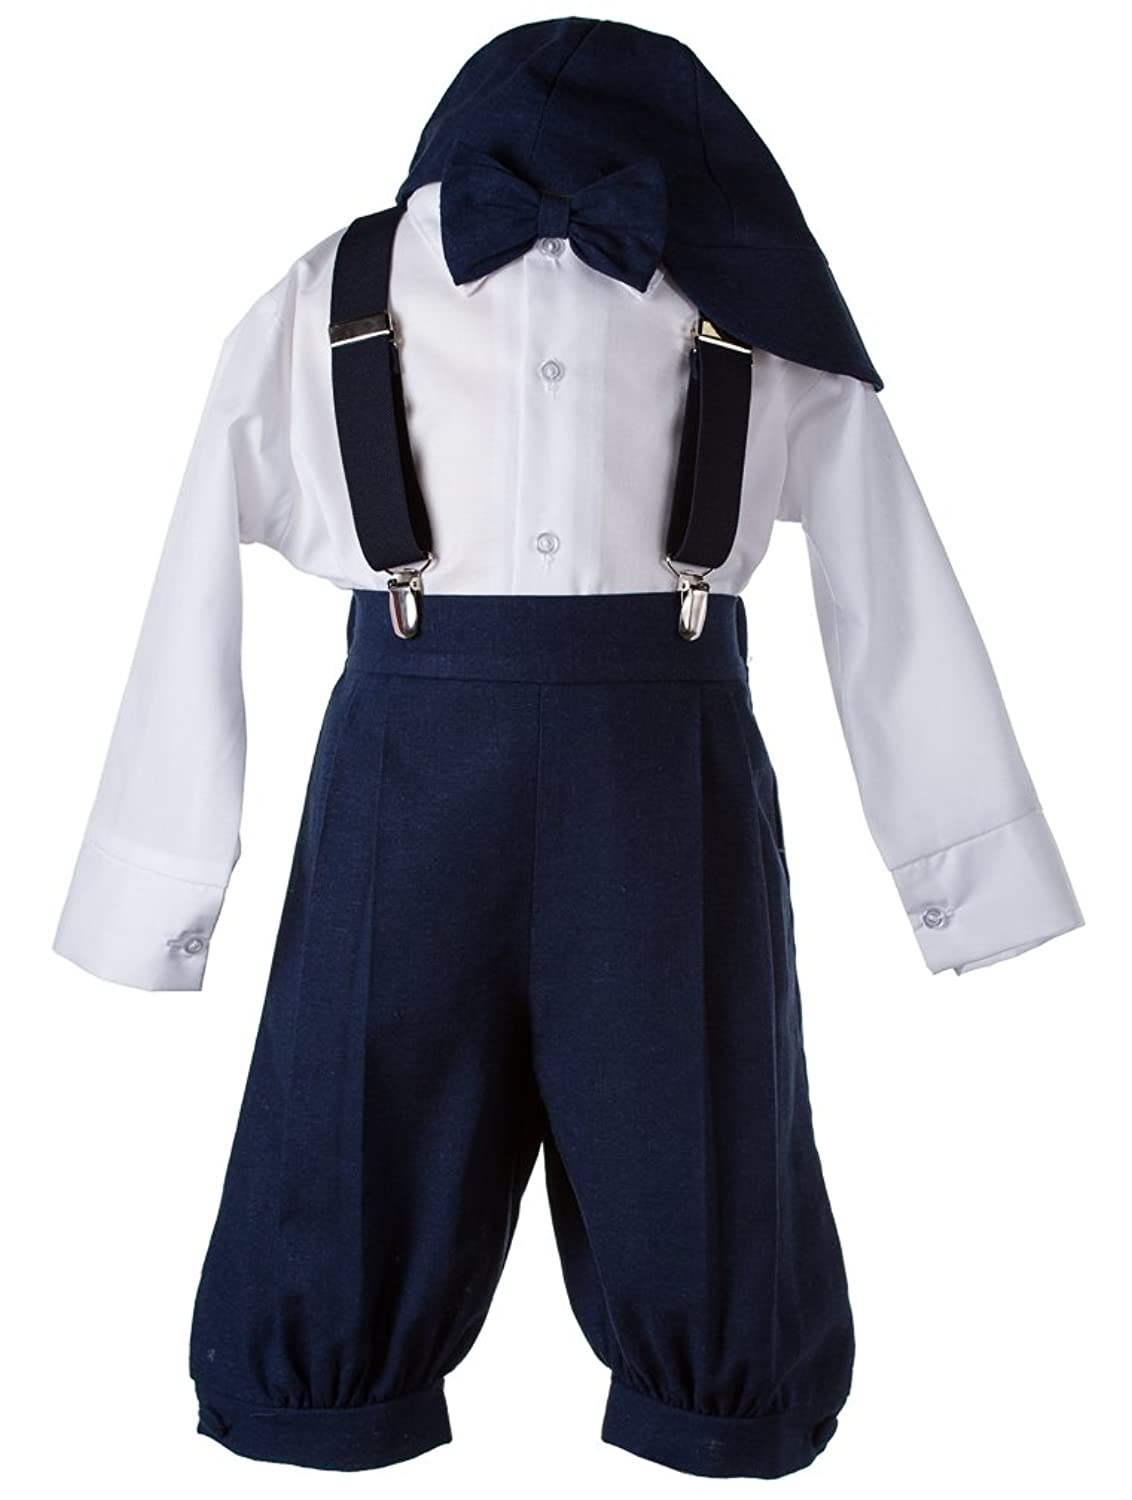 Vintage Style Children's Clothing: Girls, Boys, Baby, Toddler Boys Navy Linen Knicker 5 Piece Outfit $32.95 AT vintagedancer.com